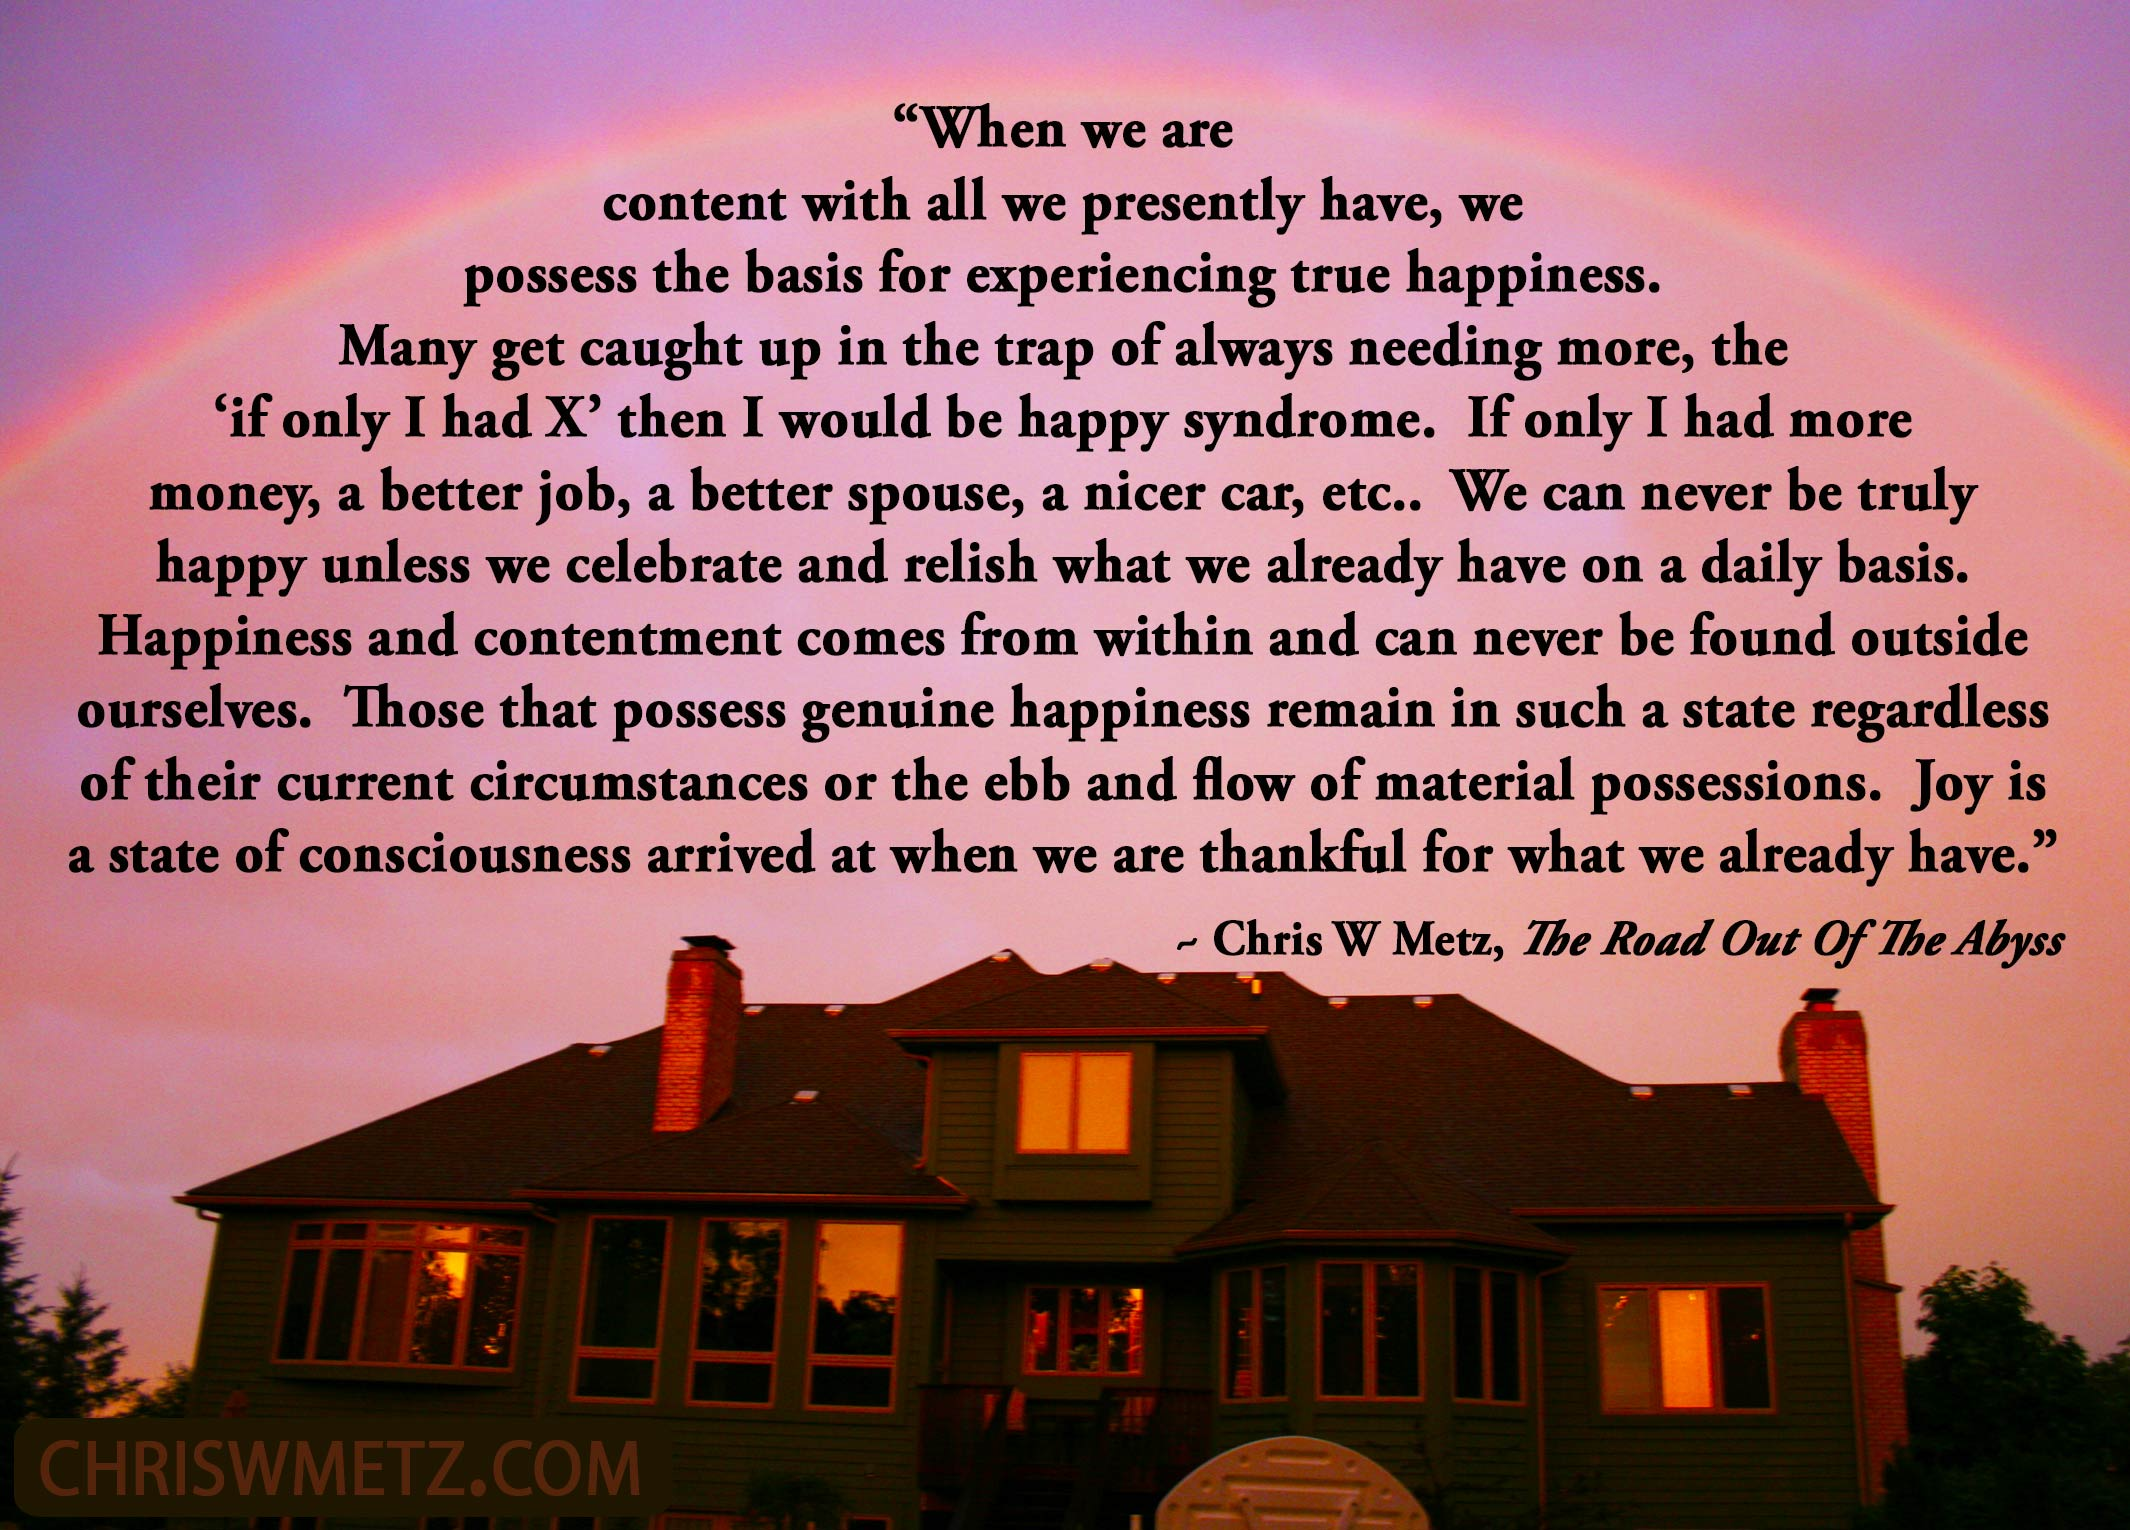 happiness quote 6 chris w metz the road out of the abyss. Black Bedroom Furniture Sets. Home Design Ideas